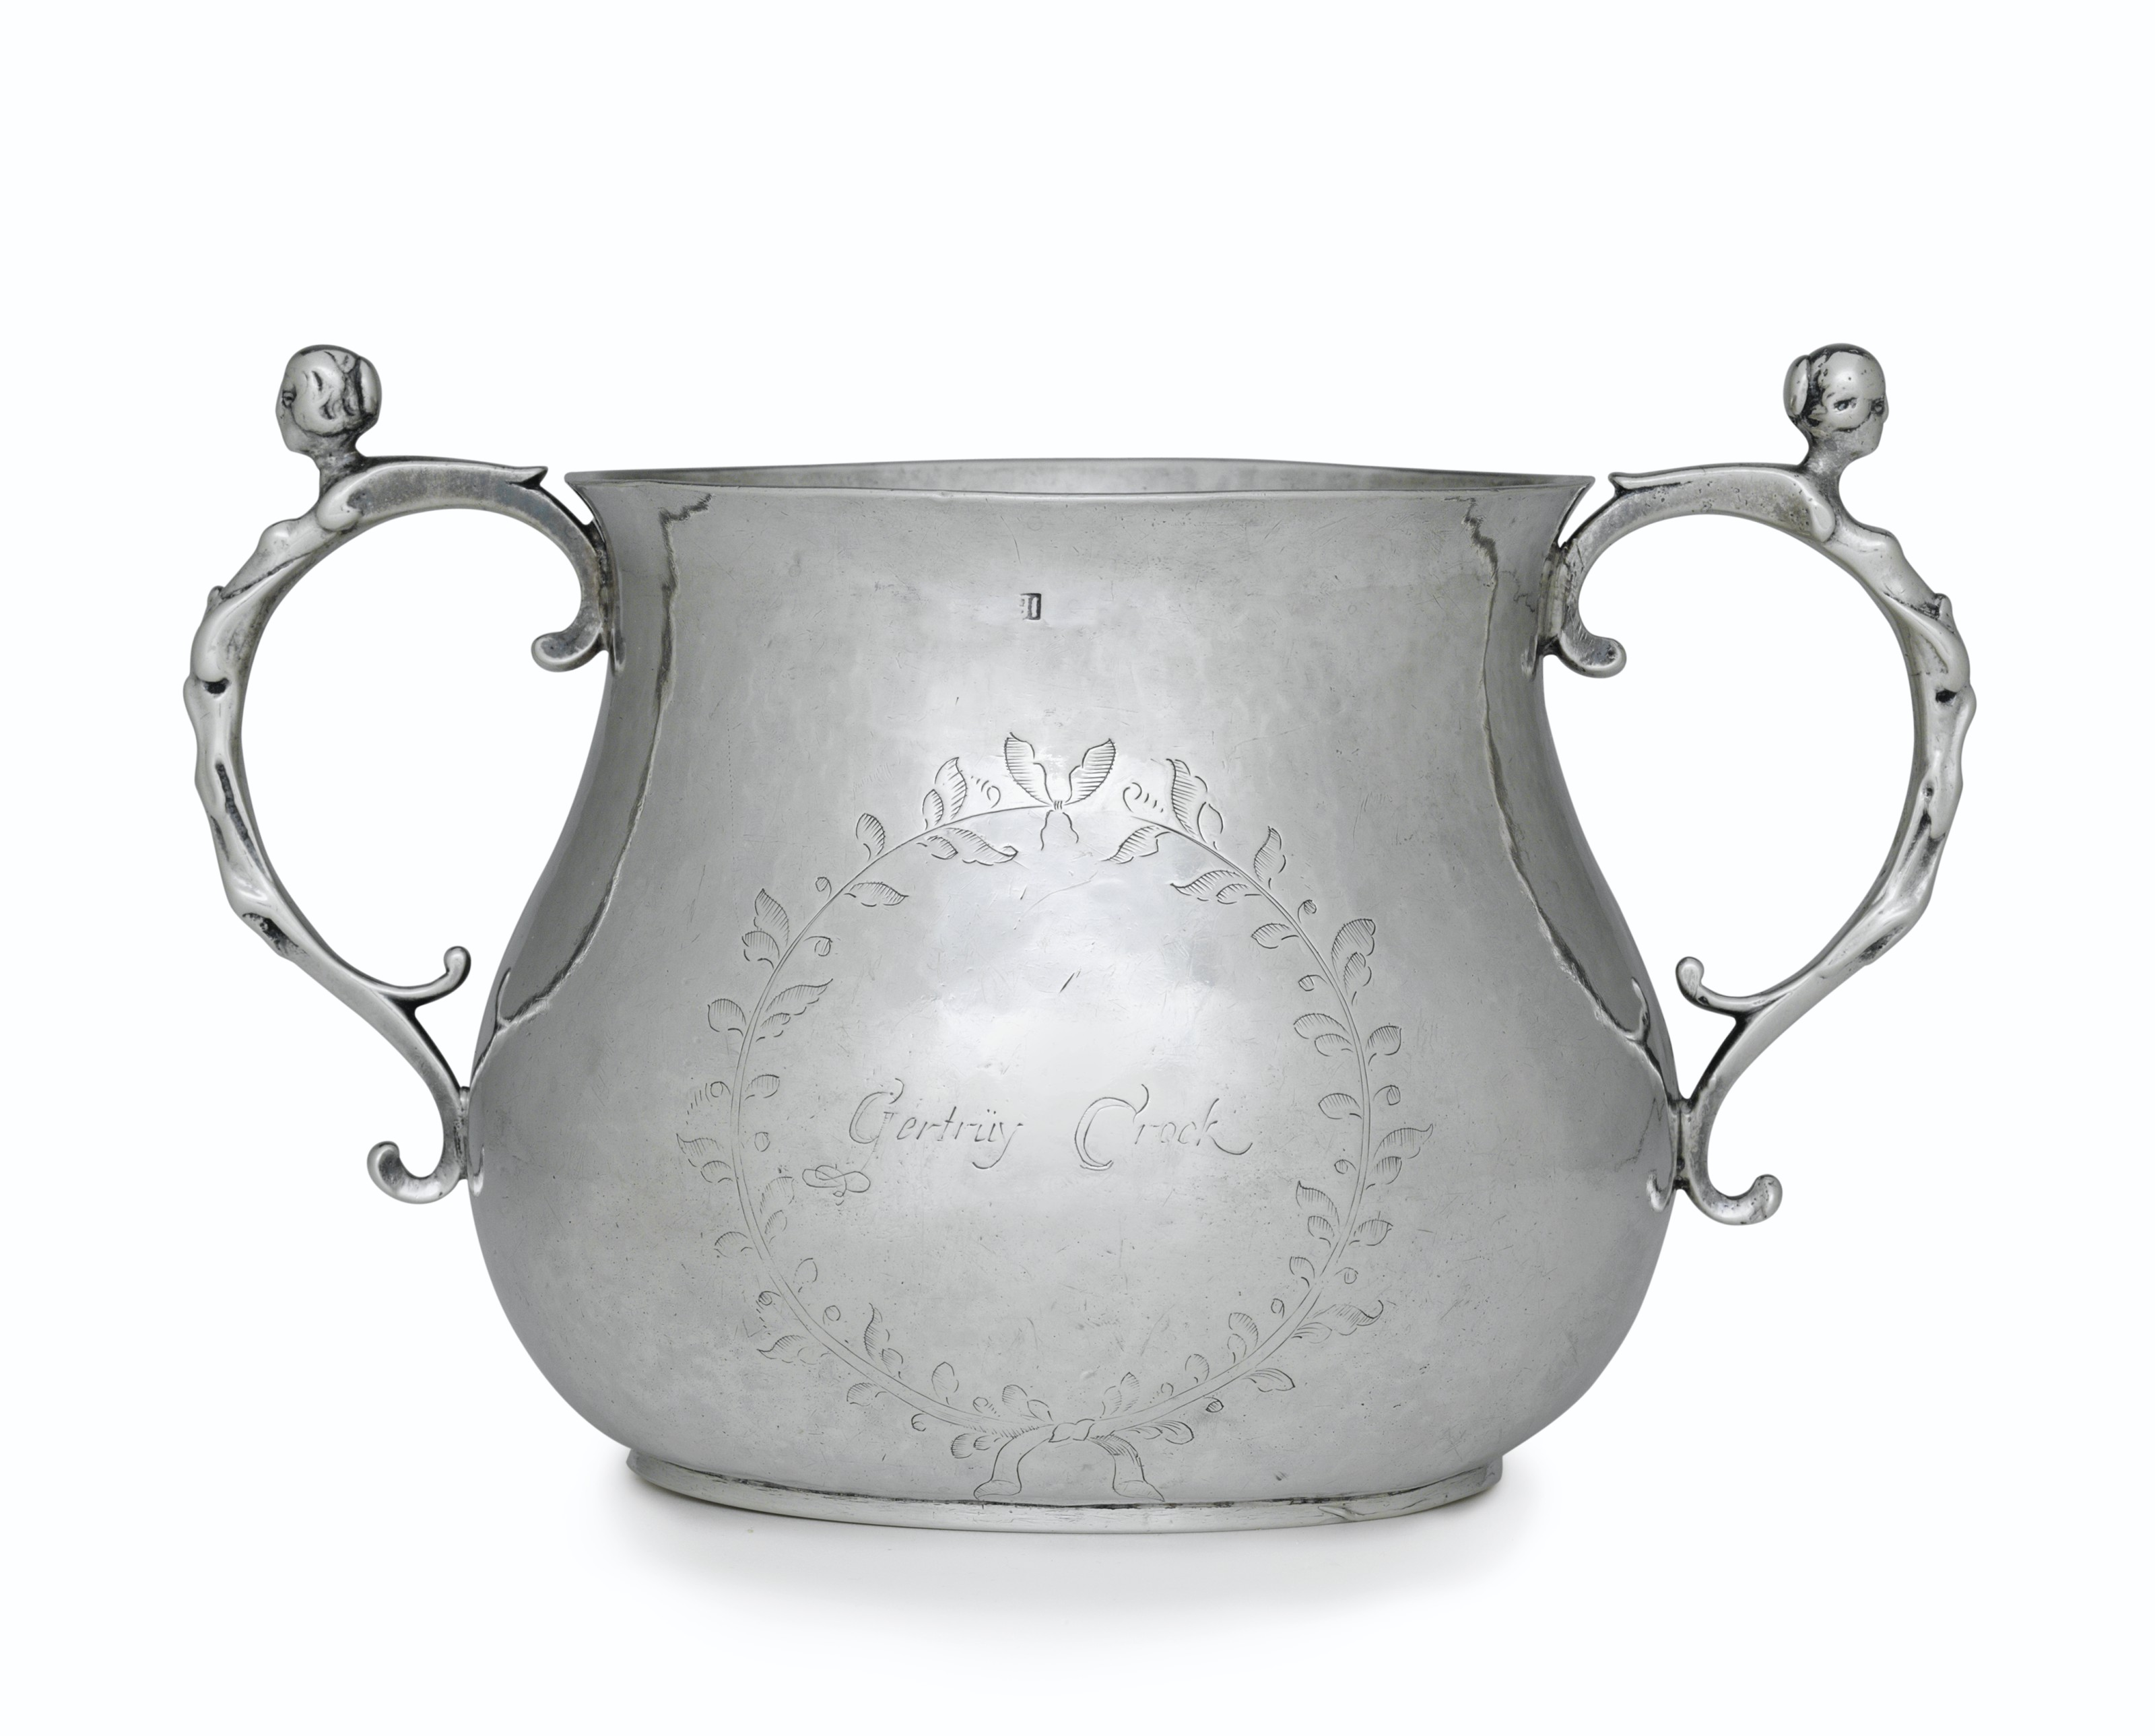 AN IMPORTANT SILVER CAUDLE CUP